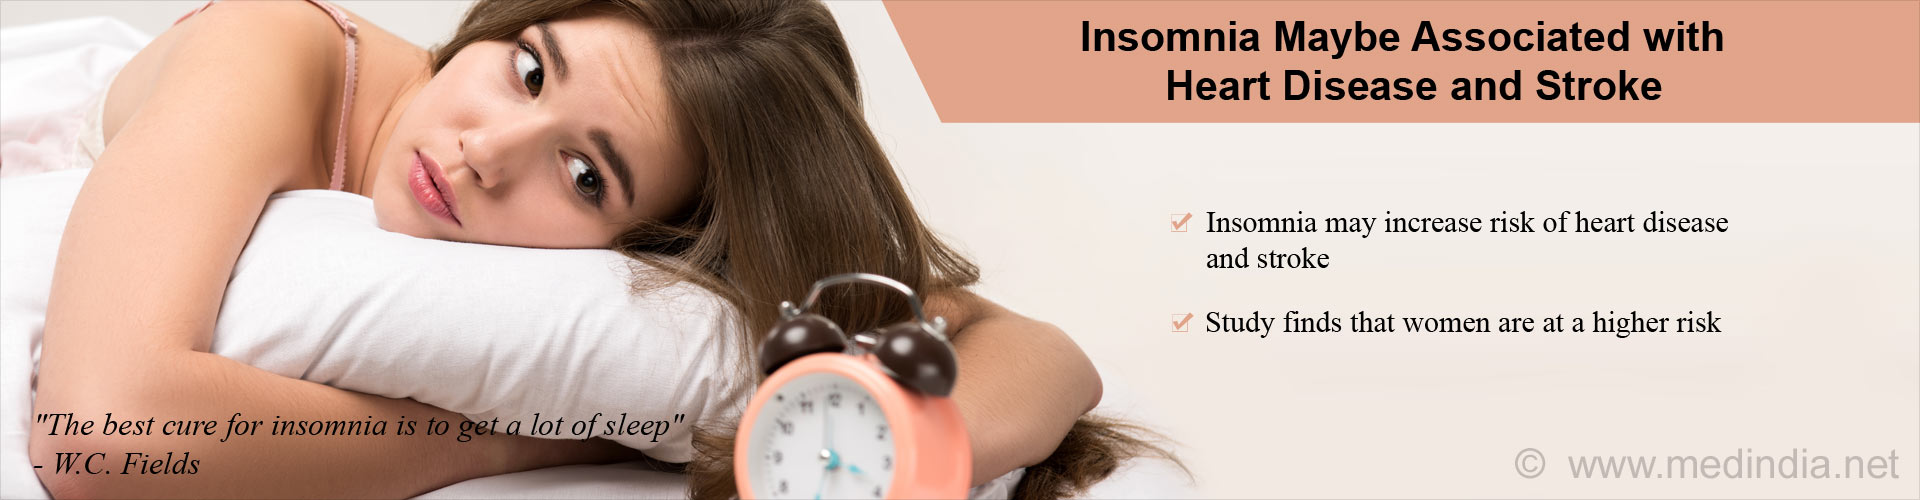 Insomnia Maybe Associated with Heart Disease and Stroke